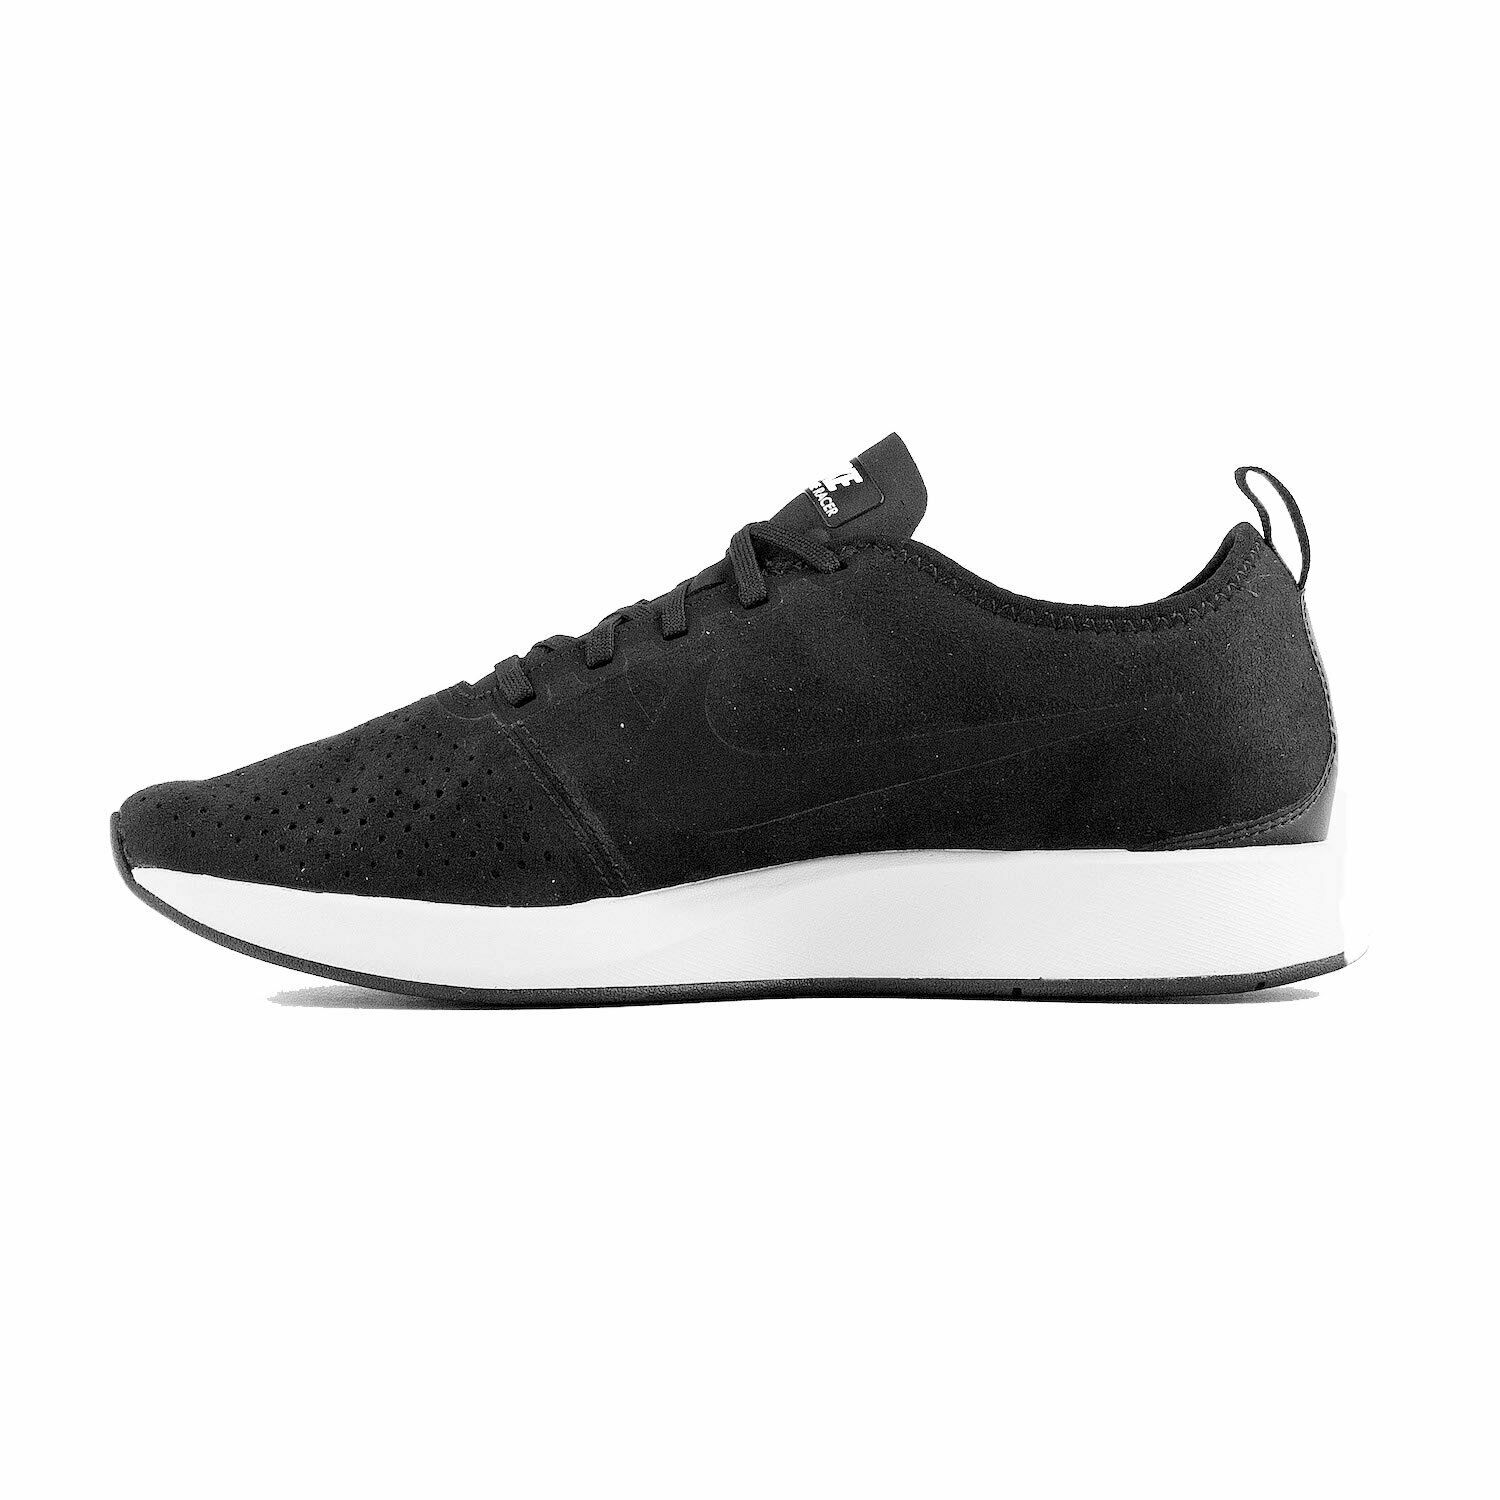 Nike Mens Dualtone Racer PRM Low Top Lace Up Running zapatilla de deporte